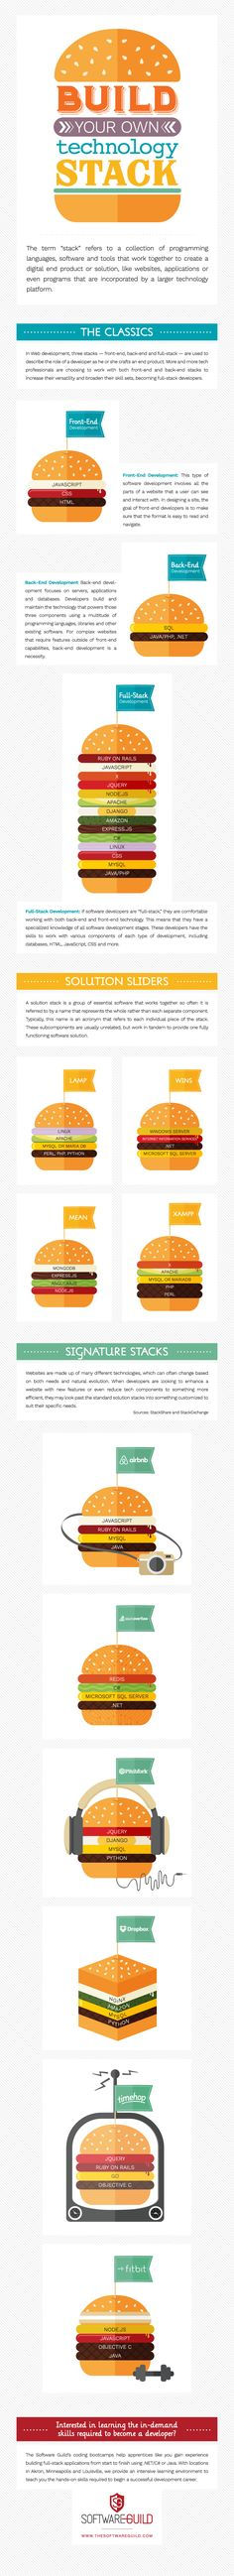 Today's infographic will help explain the difference between front and back-end developers as well as the jack-of-all-trades, a full-stack developer.